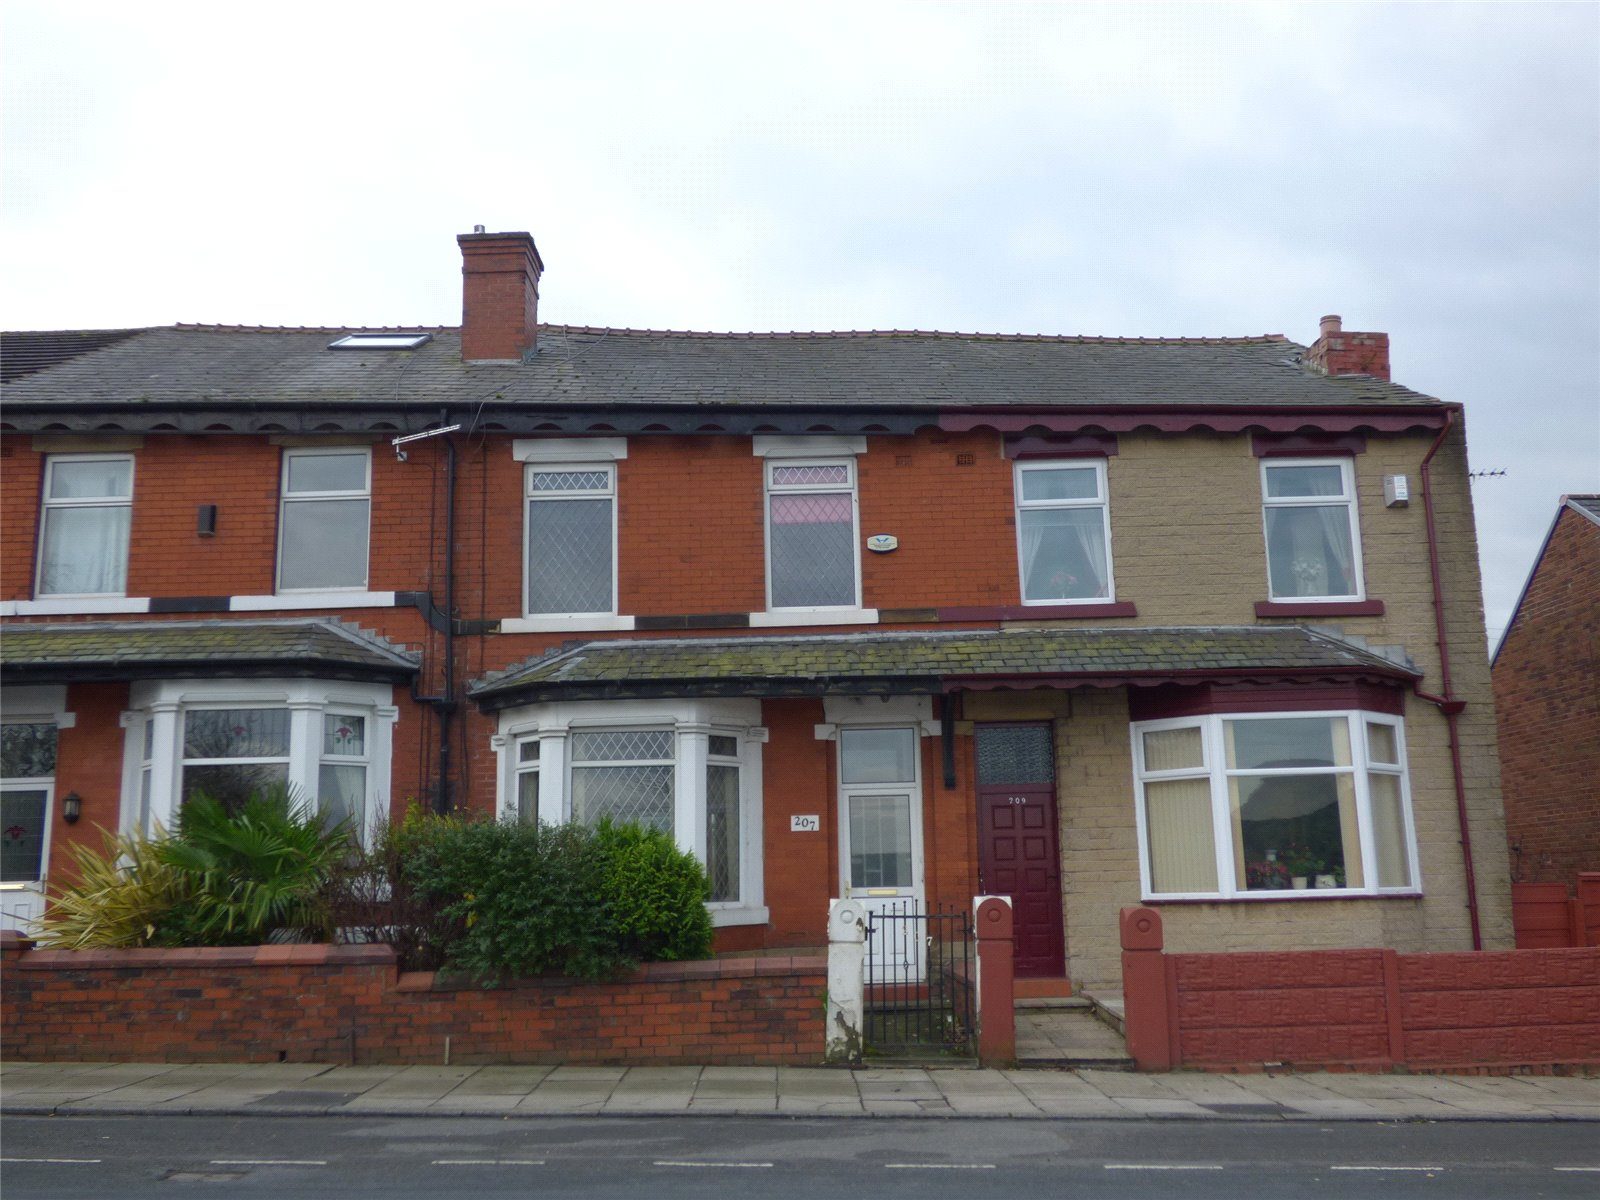 3 Bedrooms Terraced House for sale in Bury New Road, Heywood, Greater Manchester, OL10